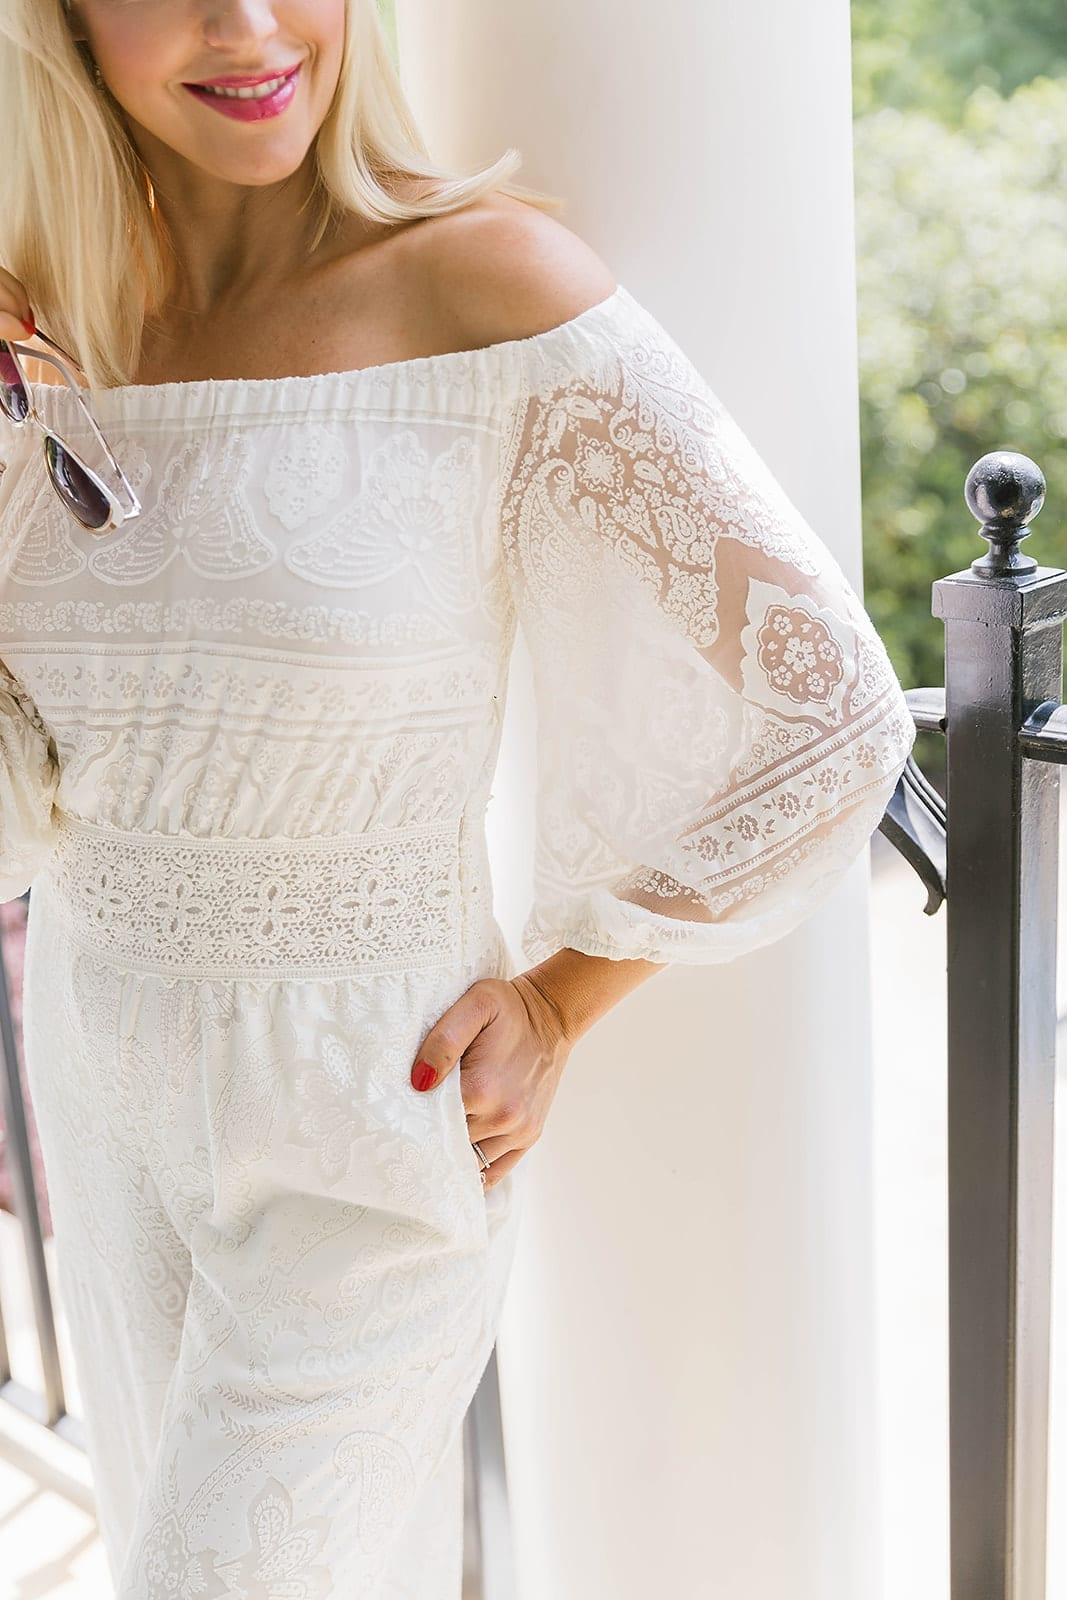 Great outfit to wear to bridal shower. White sheer lace sleeve with embroidered lace waist and all white jumpsuit with pockets.